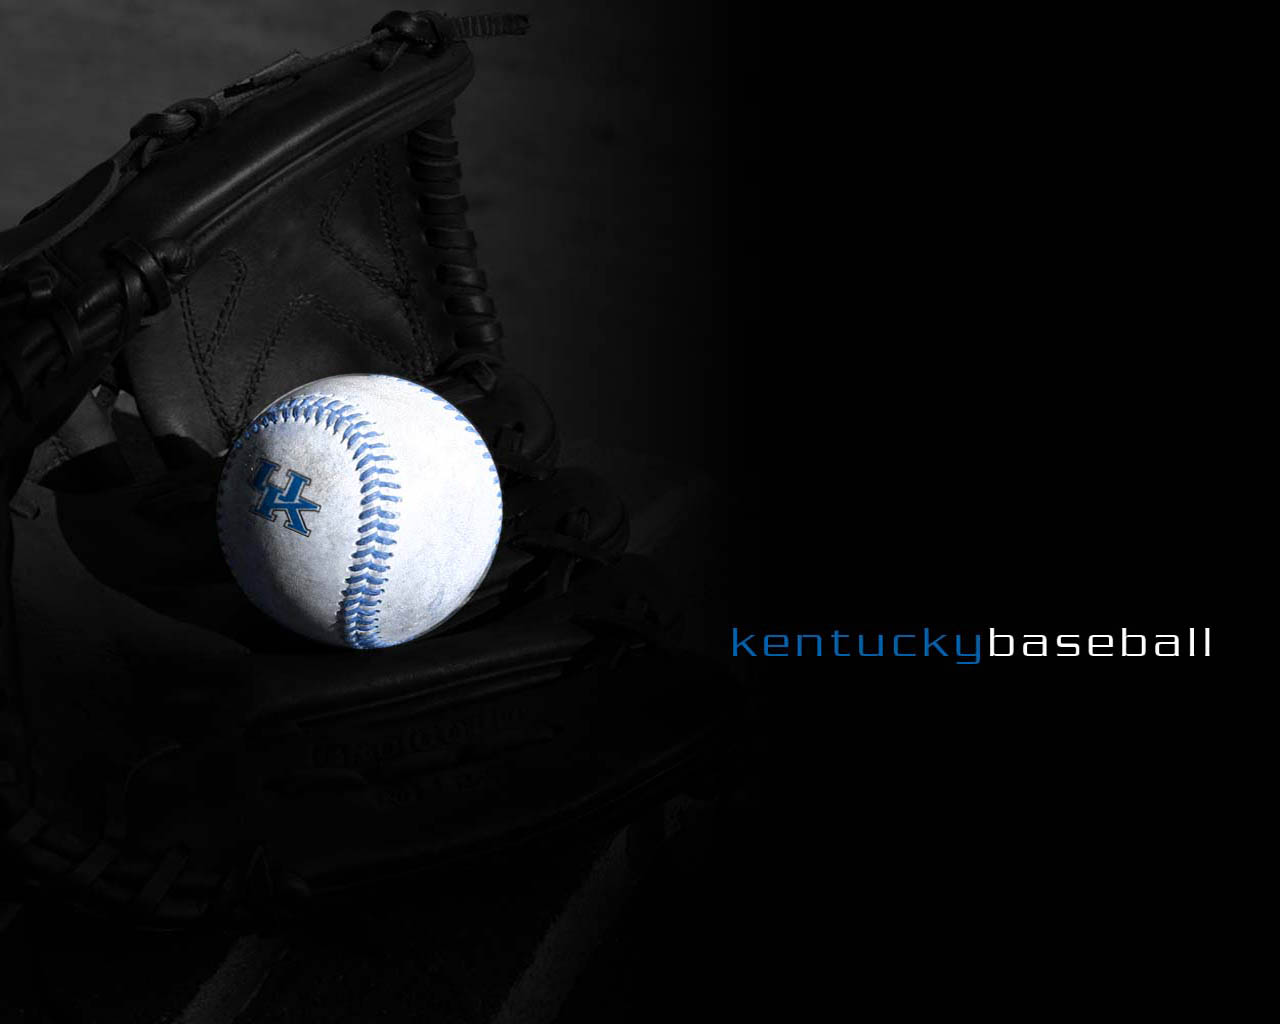 Live Sports Baseball Wallpapers